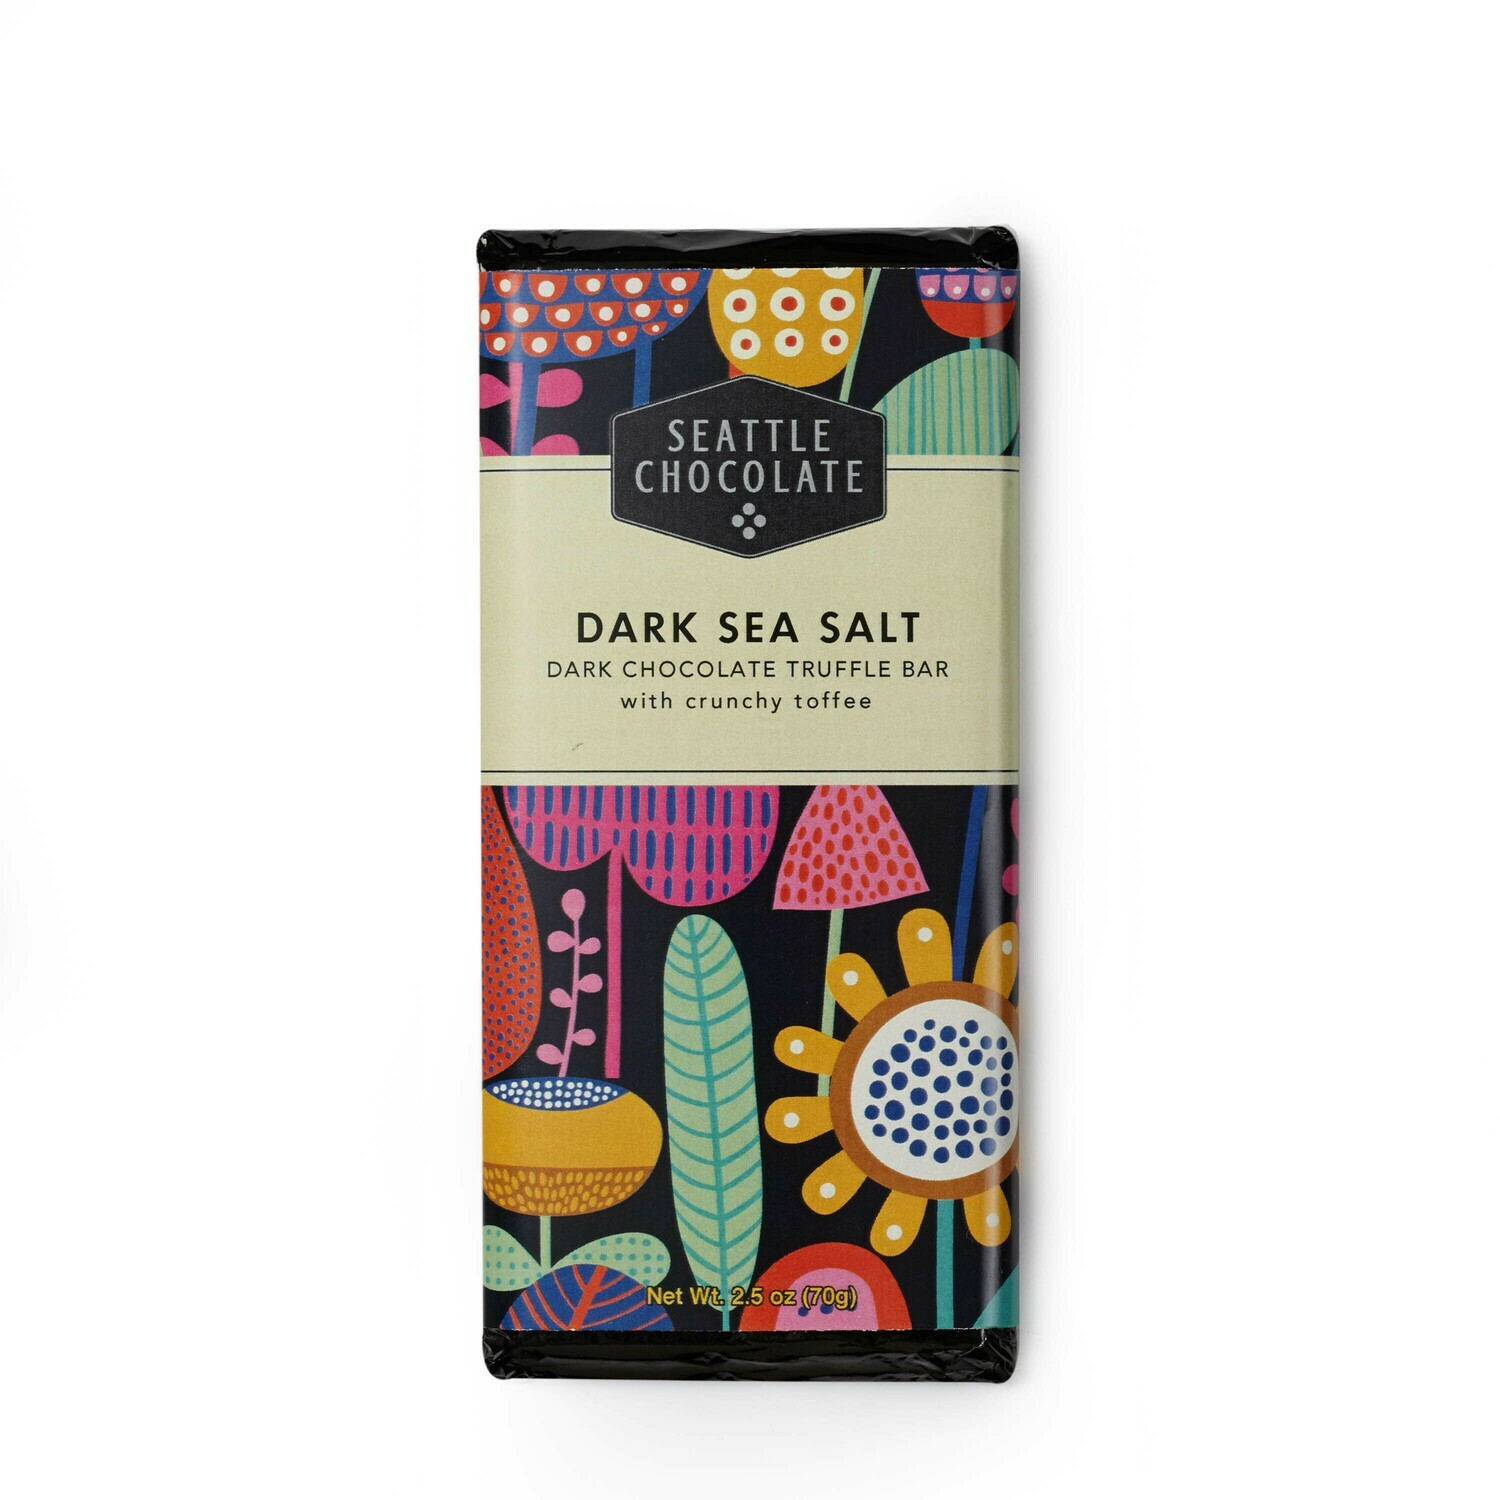 Seattle Chocolate Dark Sea Salt Truffle Bar